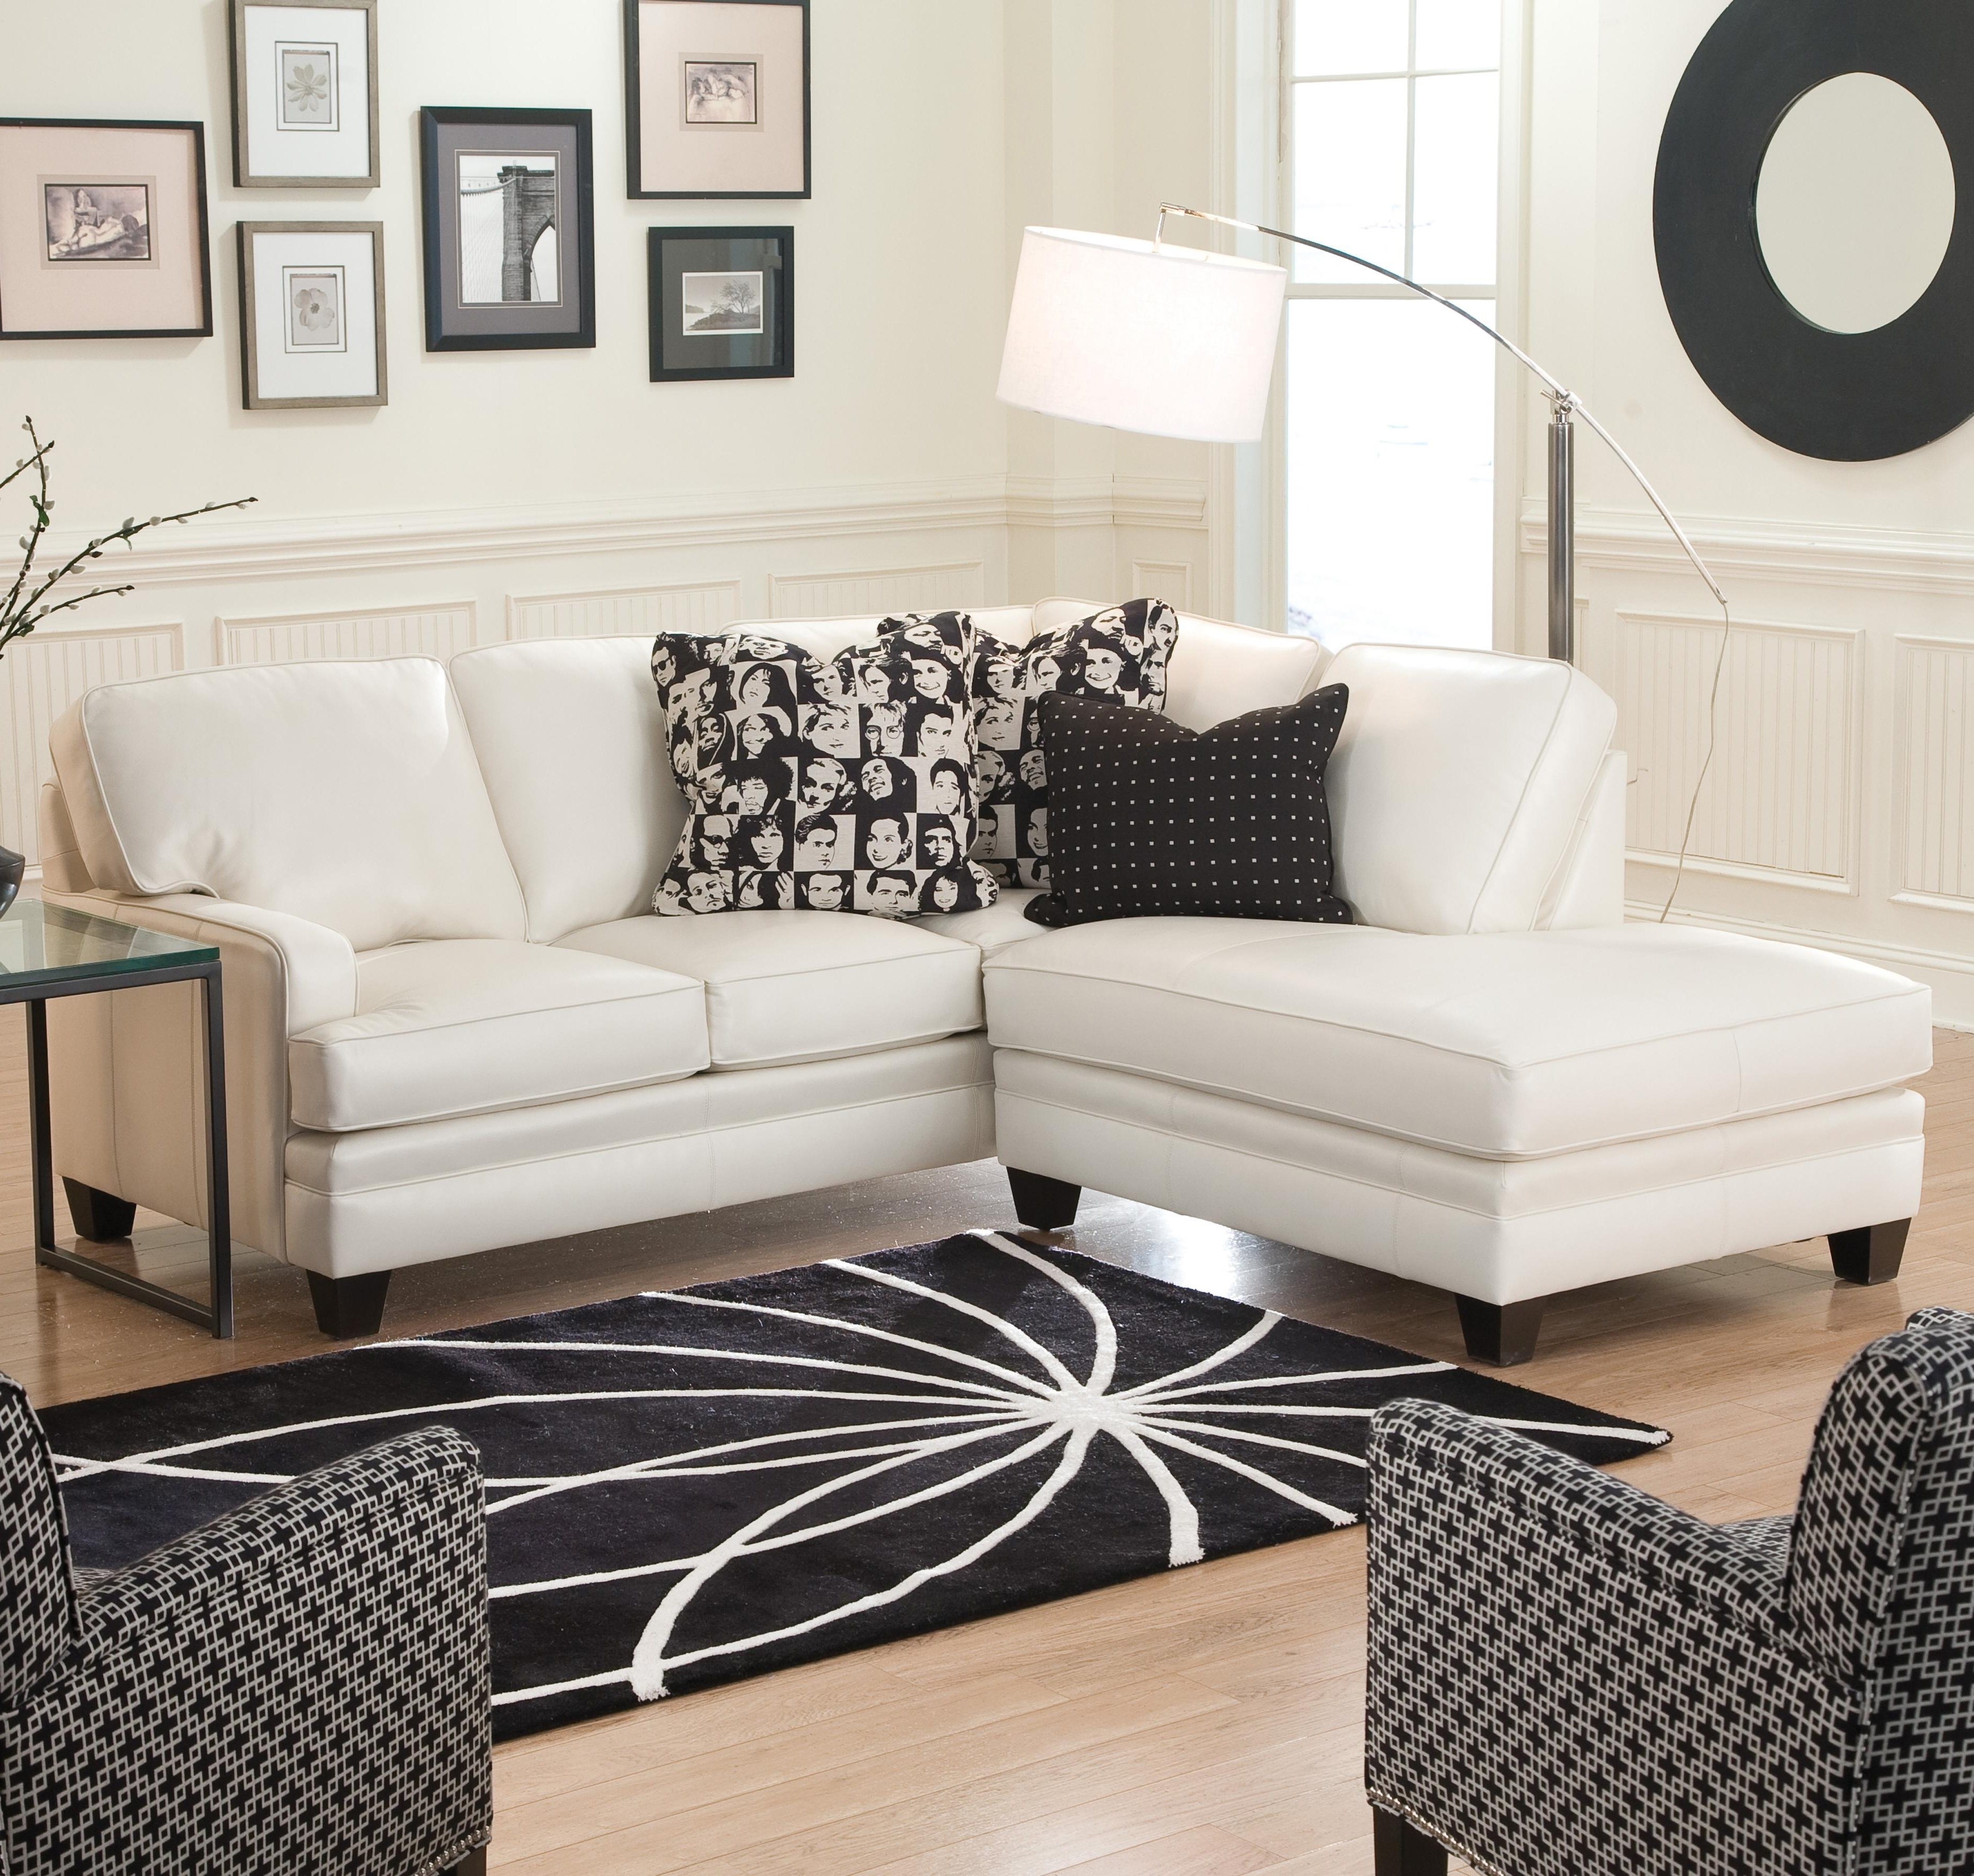 Trendy Small Sectional Sofa With Contemporary Looksmith Brothers Pertaining To Lancaster Pa Sectional Sofas (View 15 of 15)